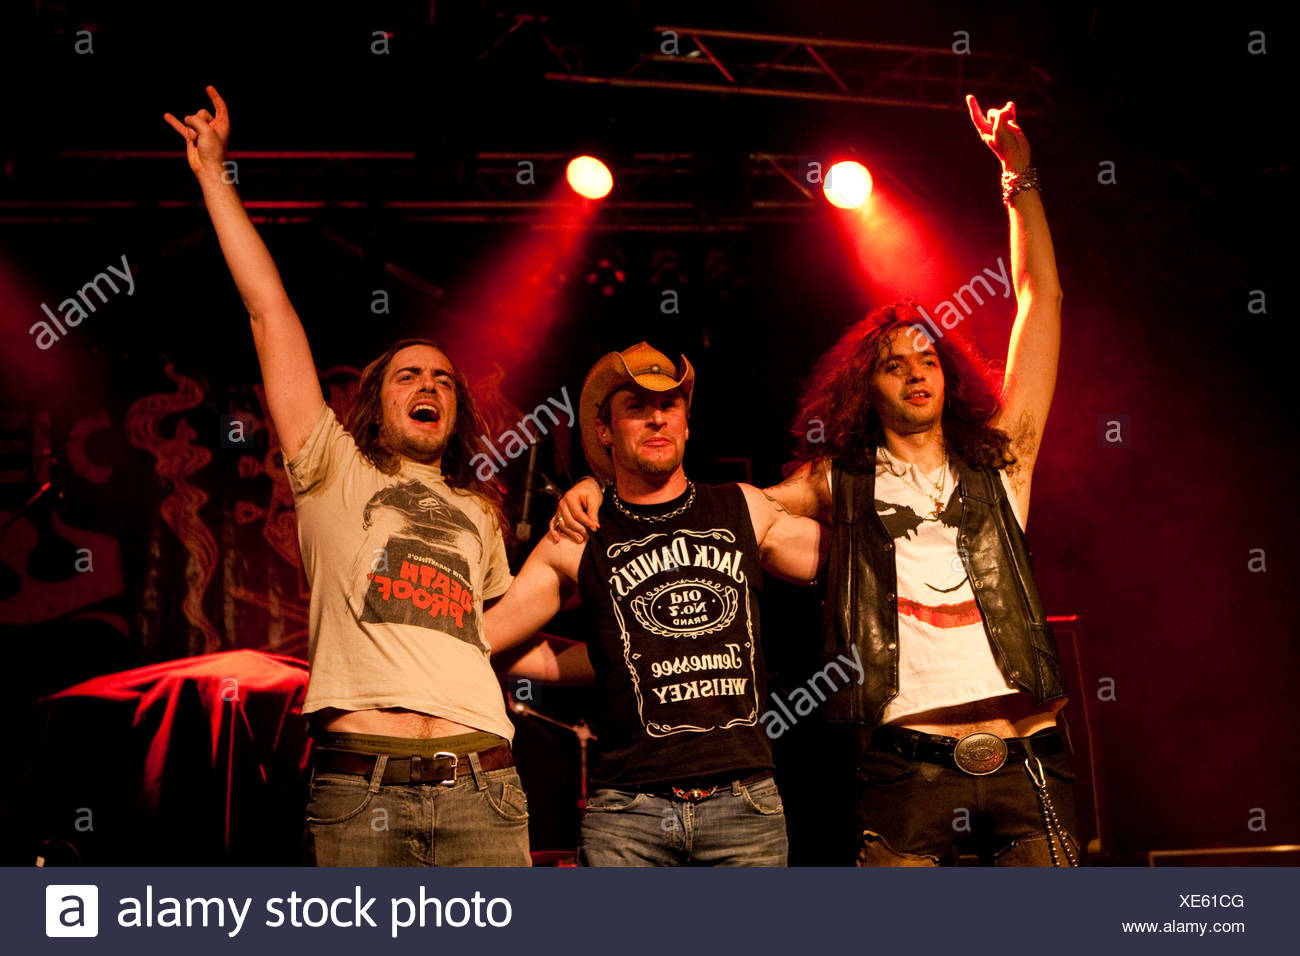 The Swiss Psychodelic Straight Rock'n'Roll band The Vibes live in the Transilvania venue in Erstfeld, Uri, Switzerland - Stock Image